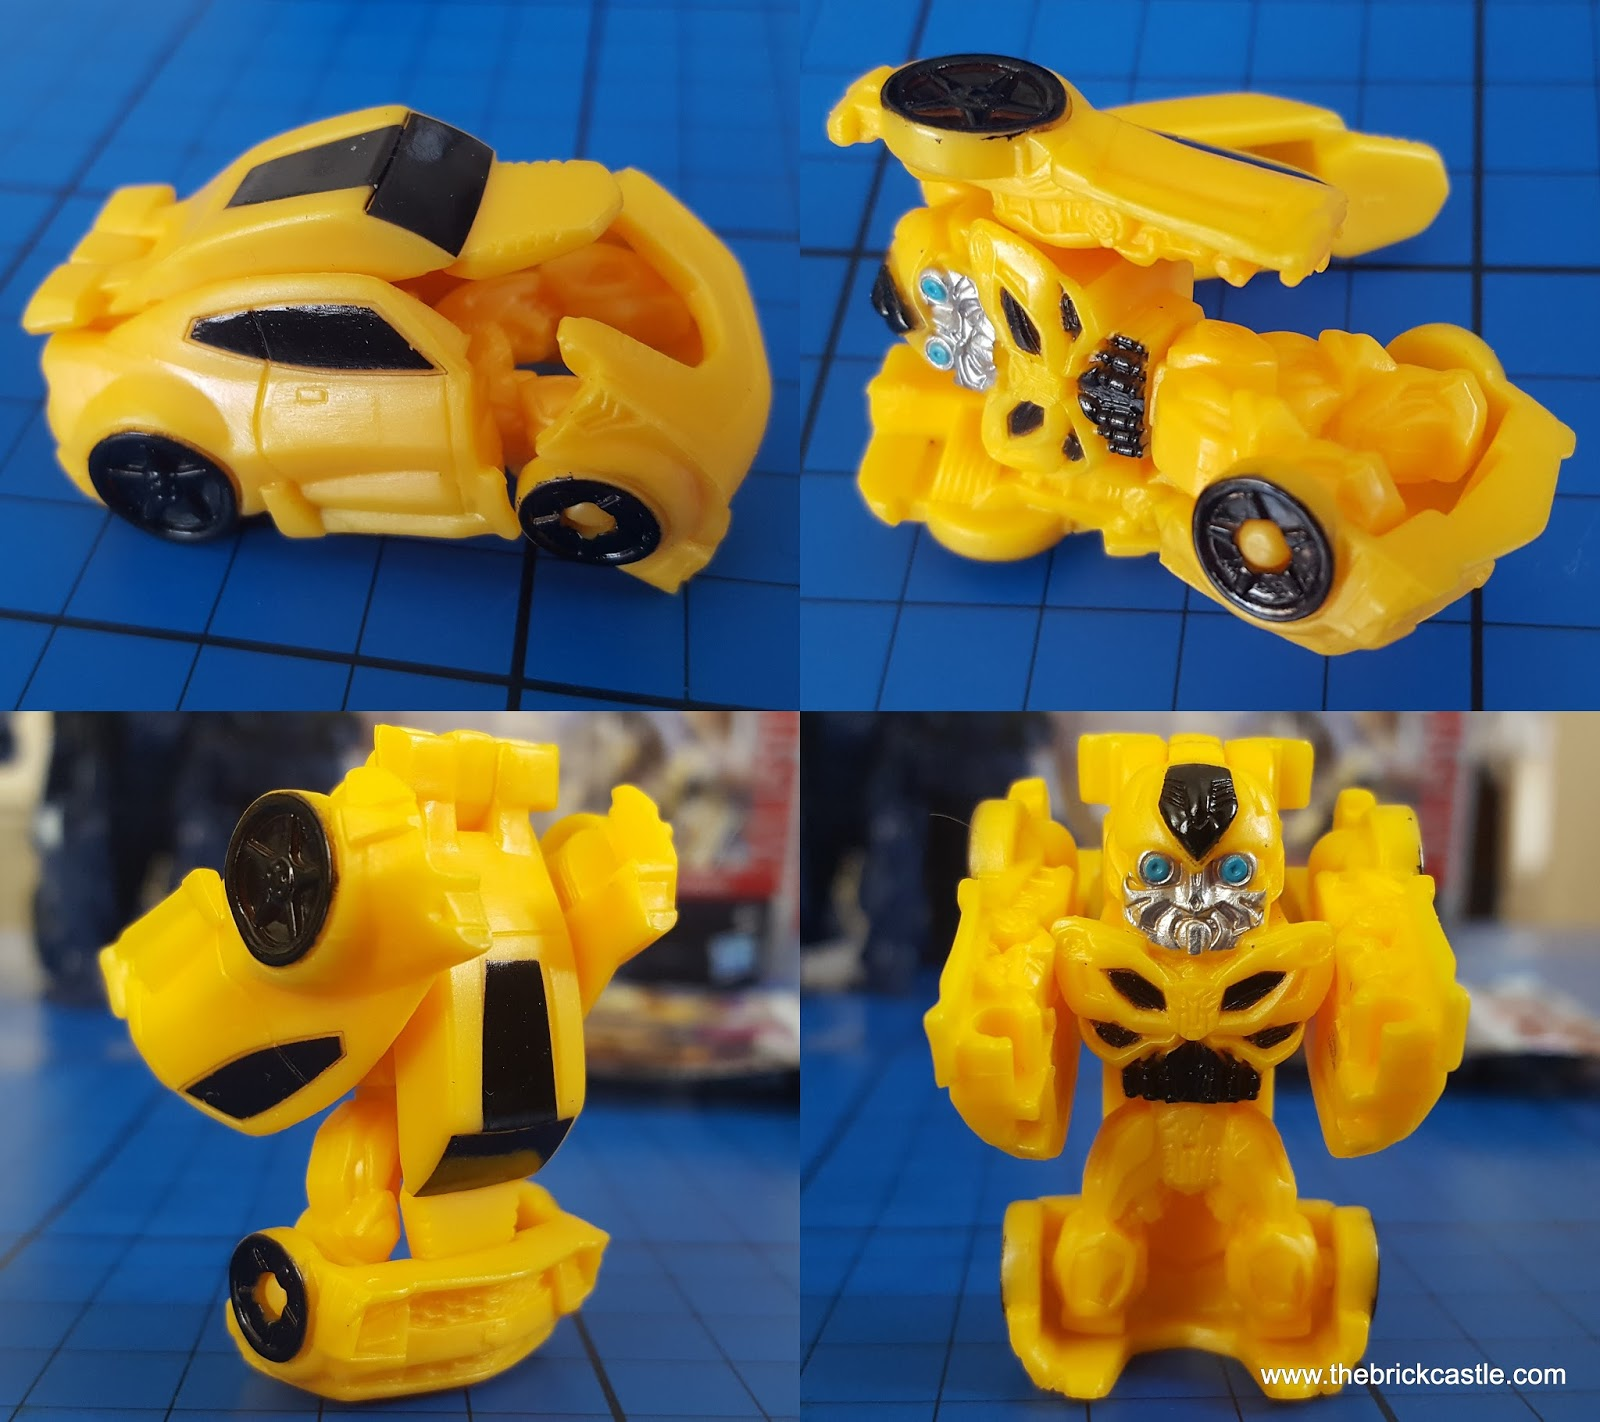 The Brick Castle: Hasbro Transformers 1-Step Turbo